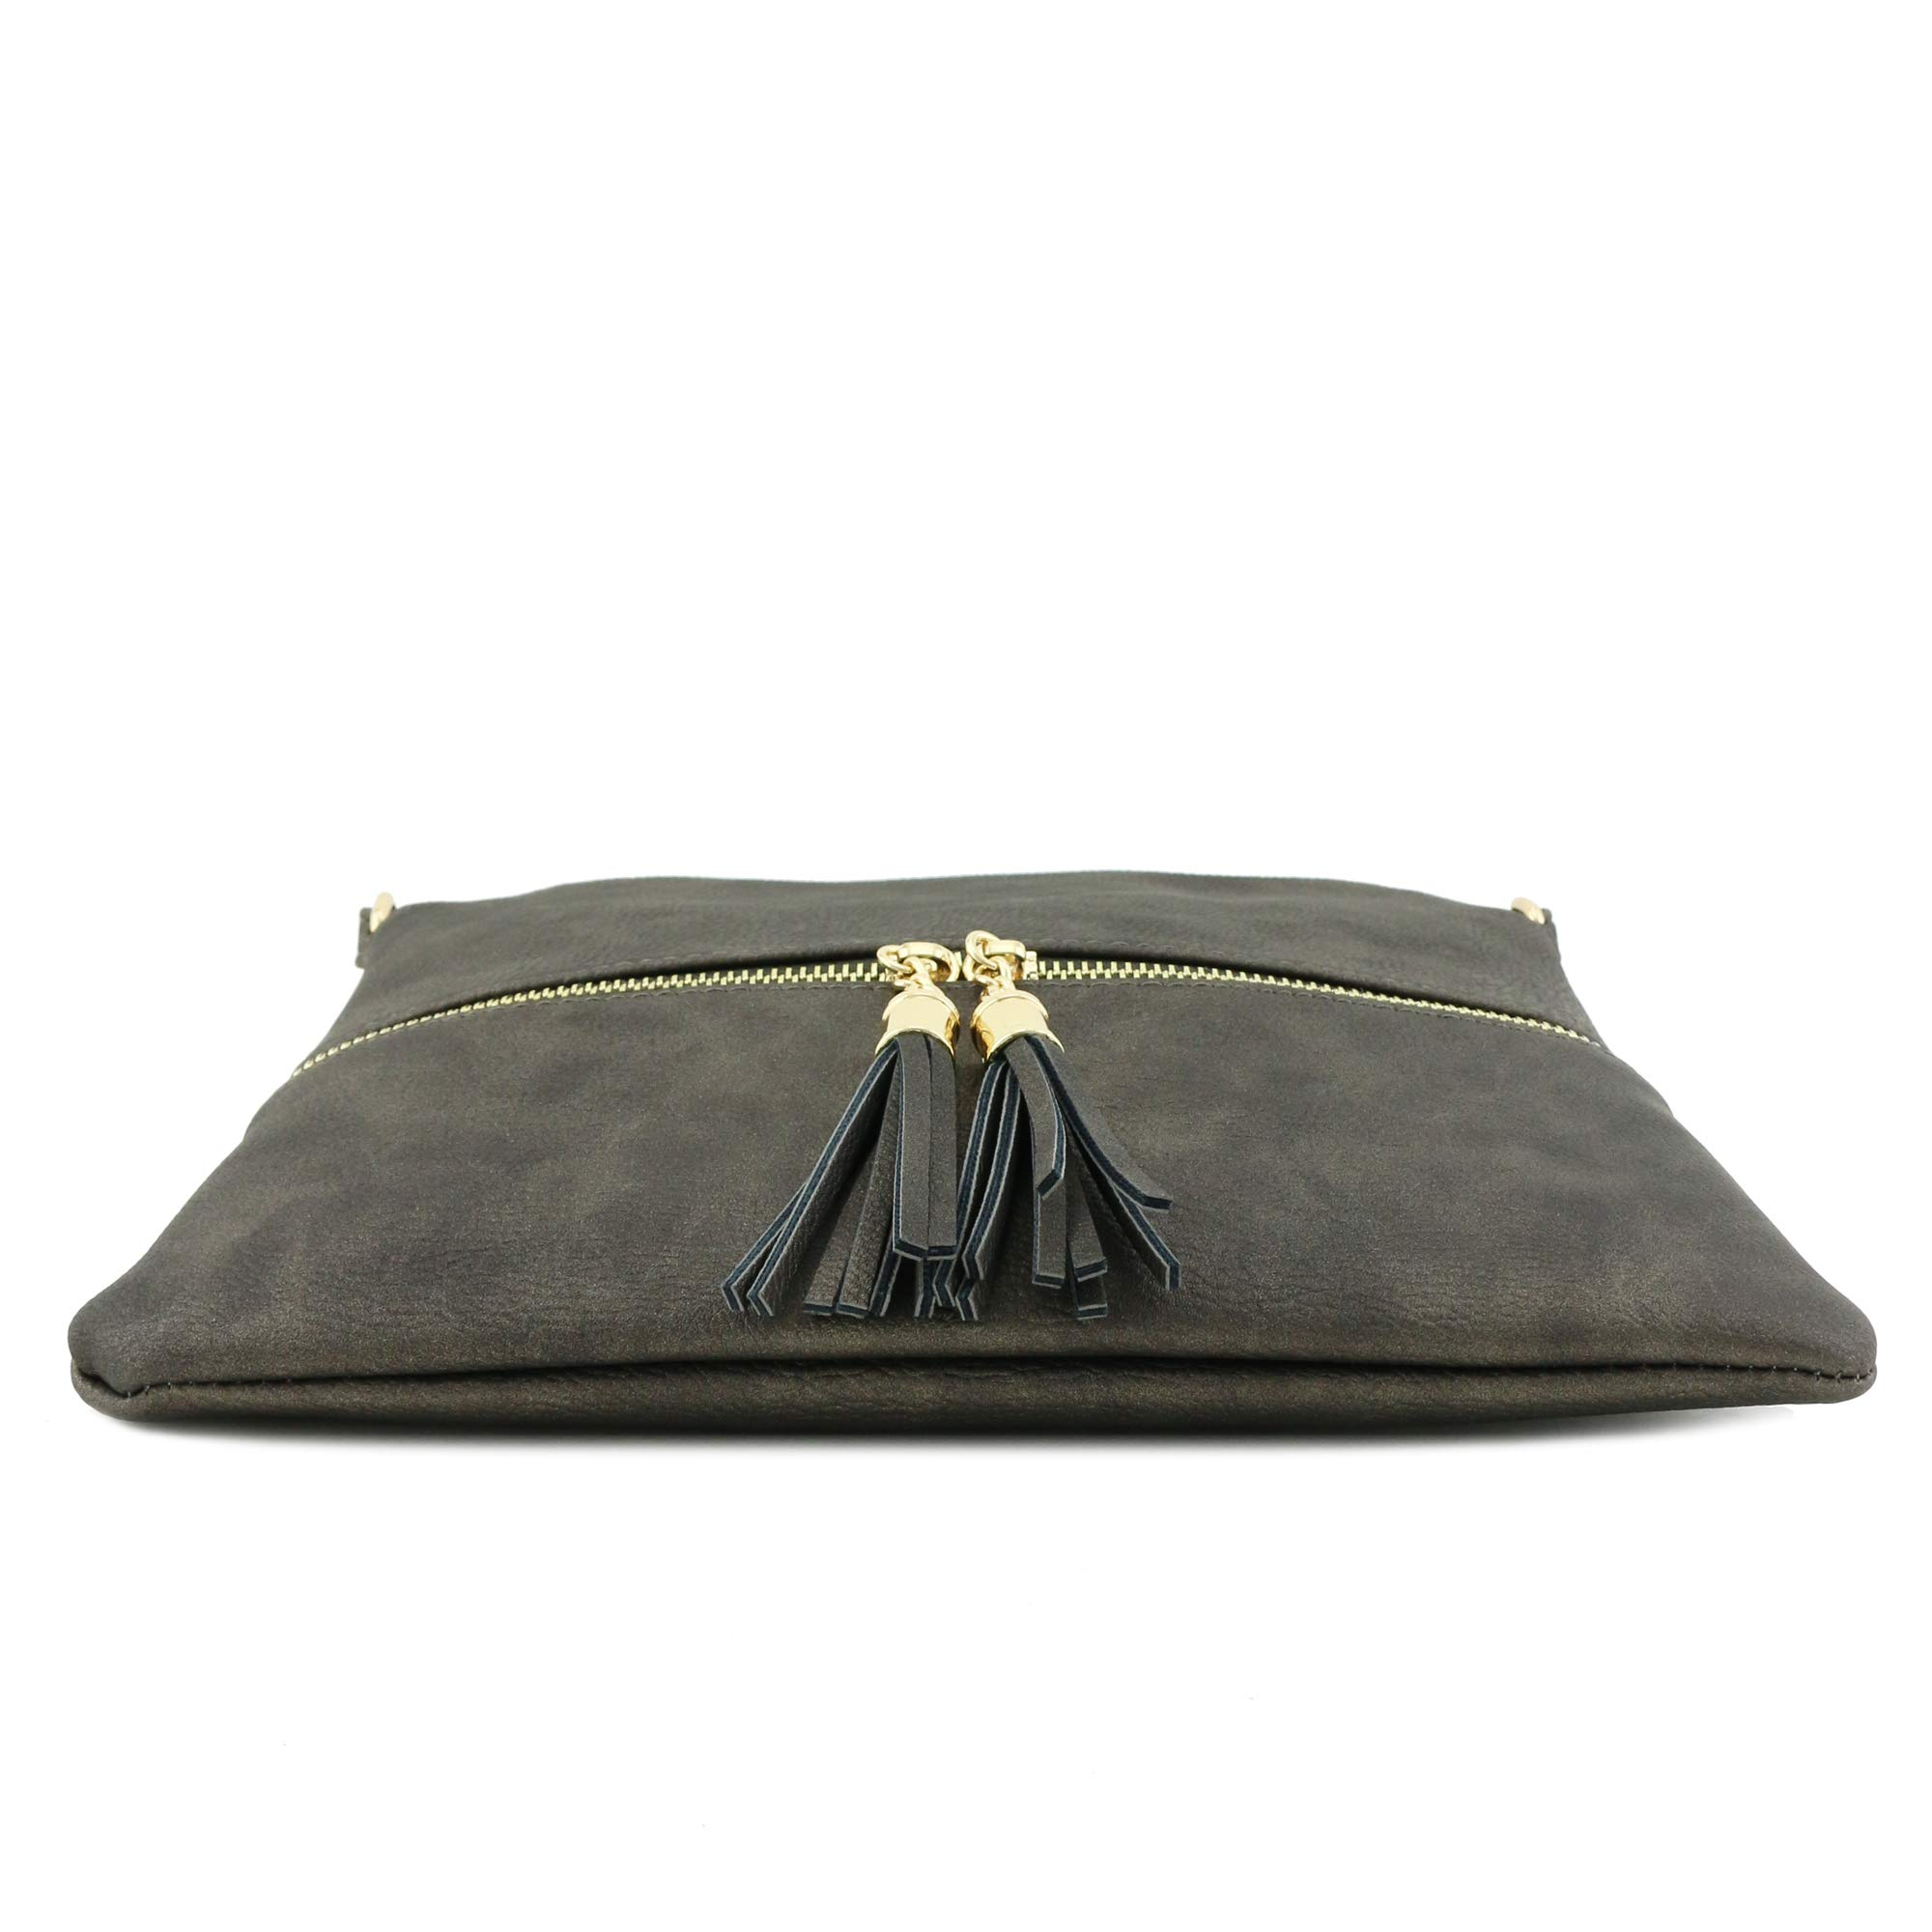 Lightweight Medium Crossbody Bag with Tassel (Pewter) by DELUXITY (Image #4)